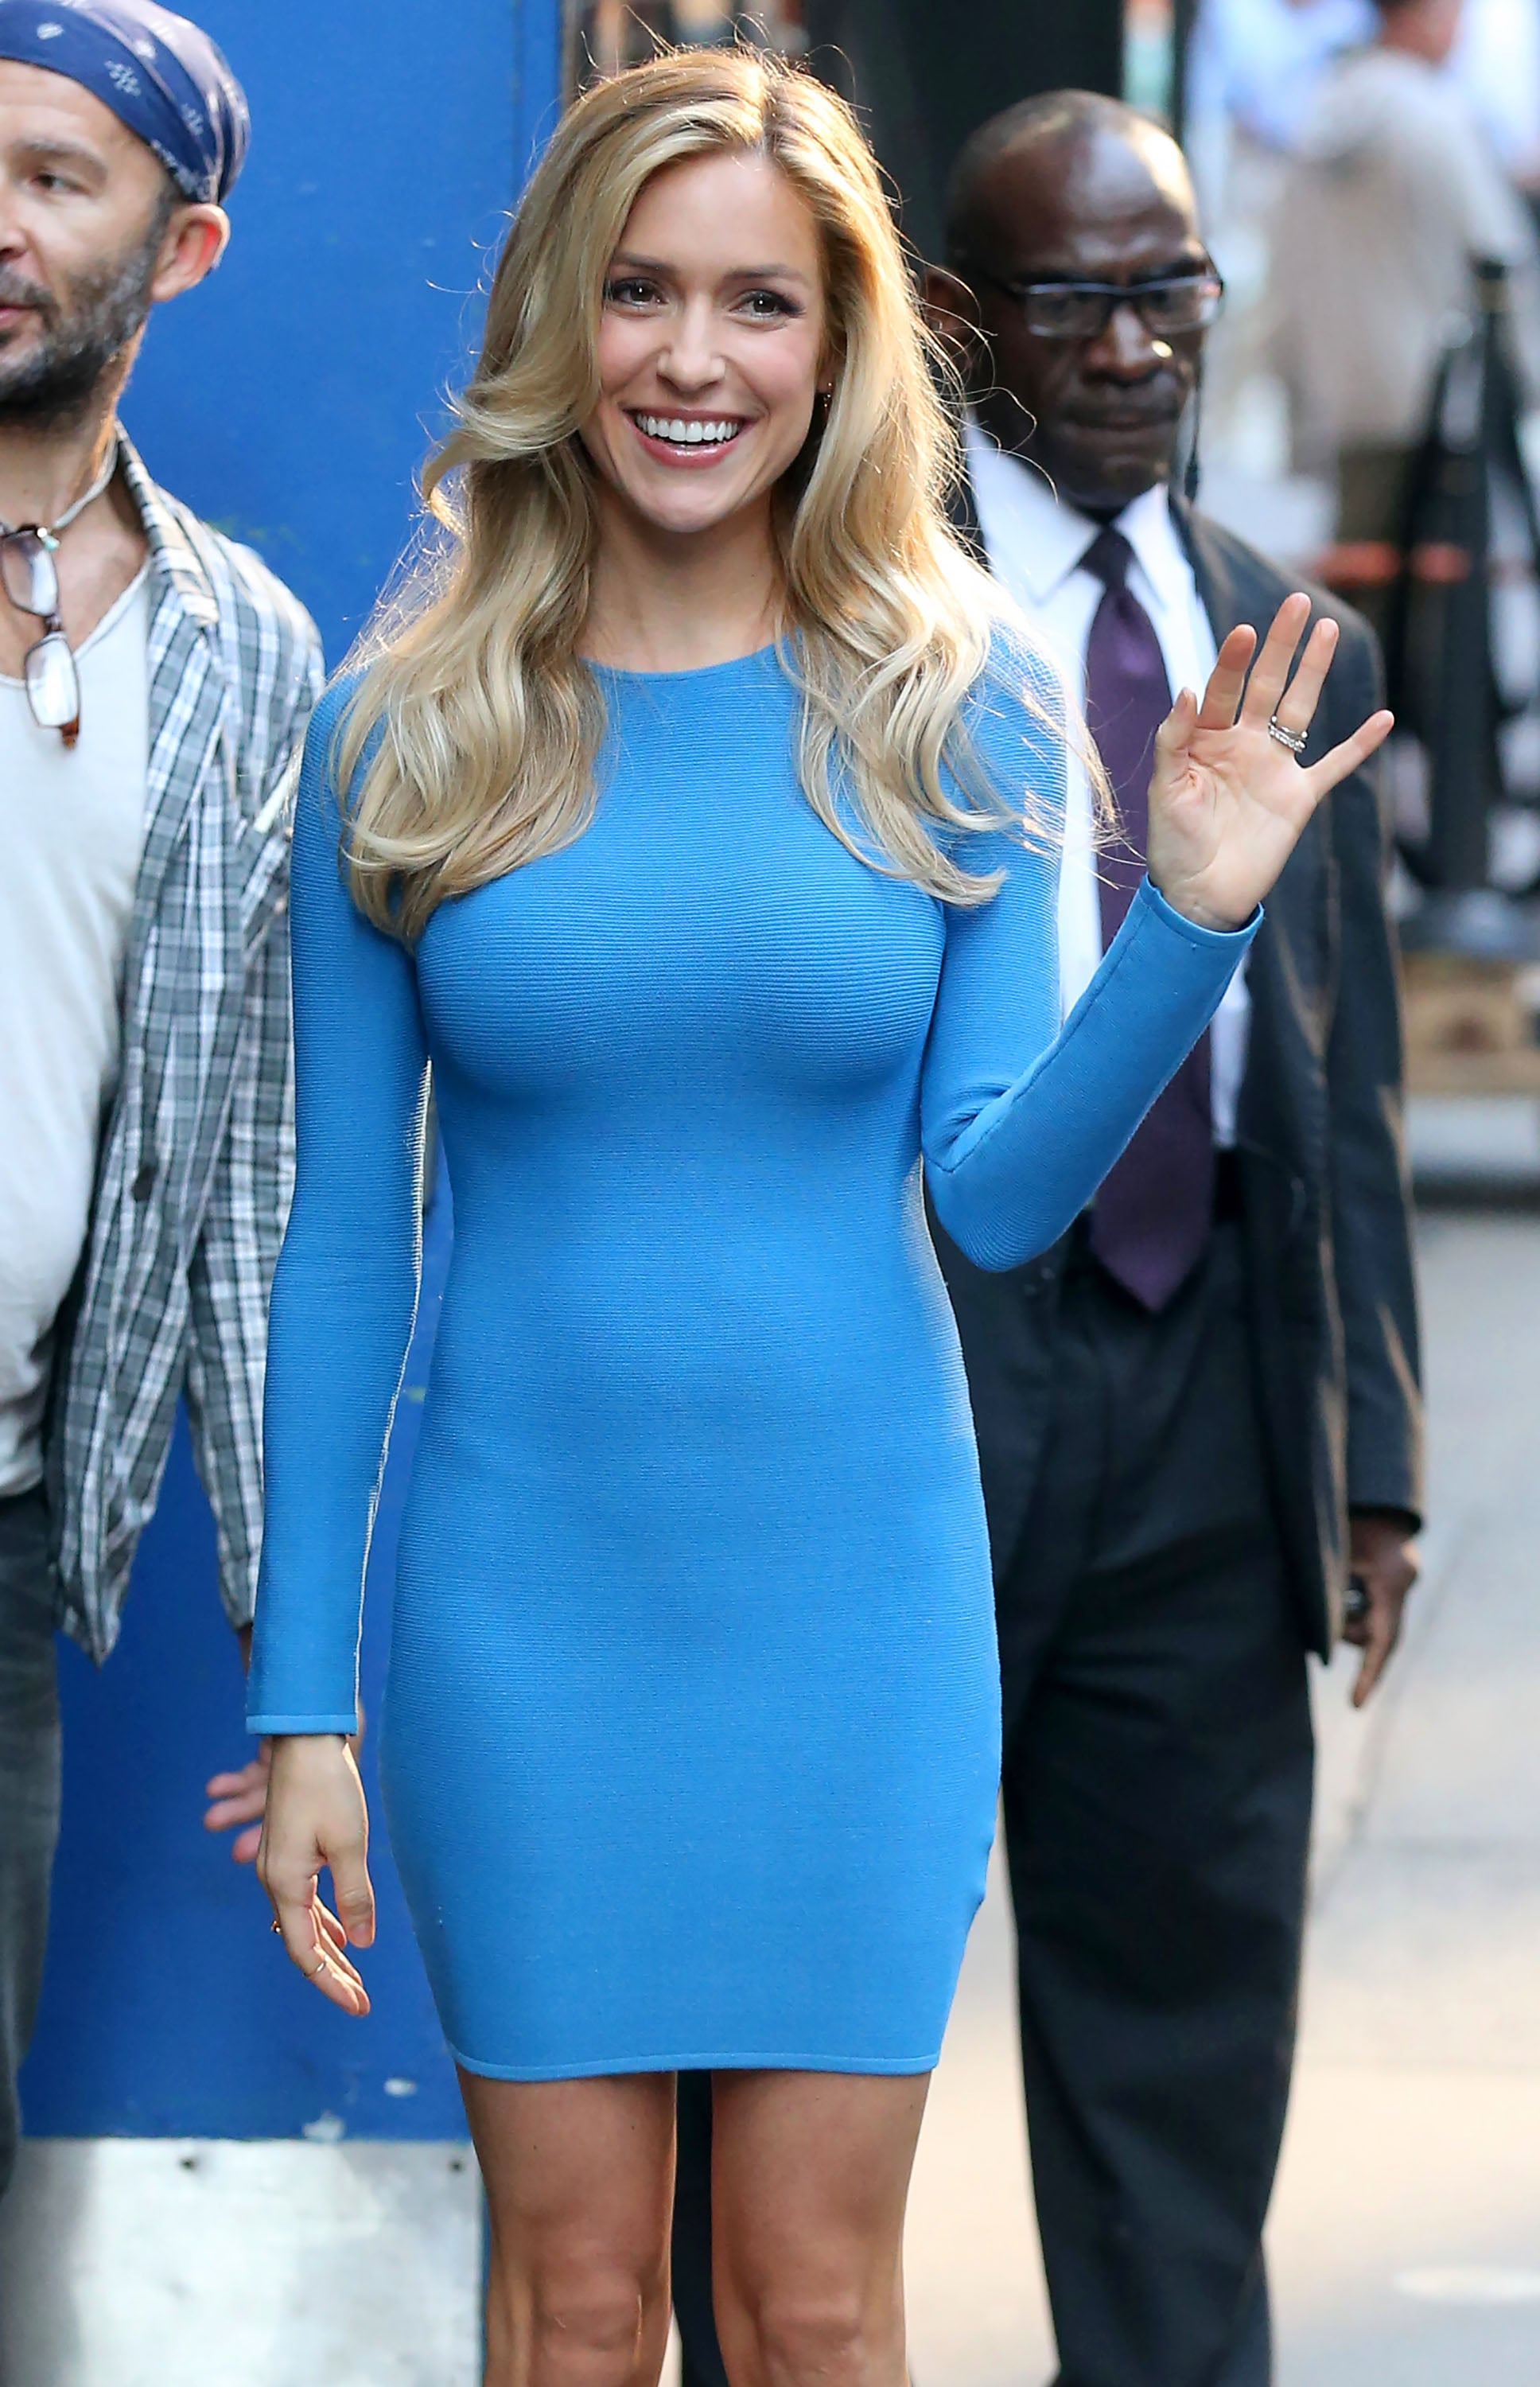 Kristin Cavallari was fresh-faced outside the NYC set of Good Morning America on Monday.